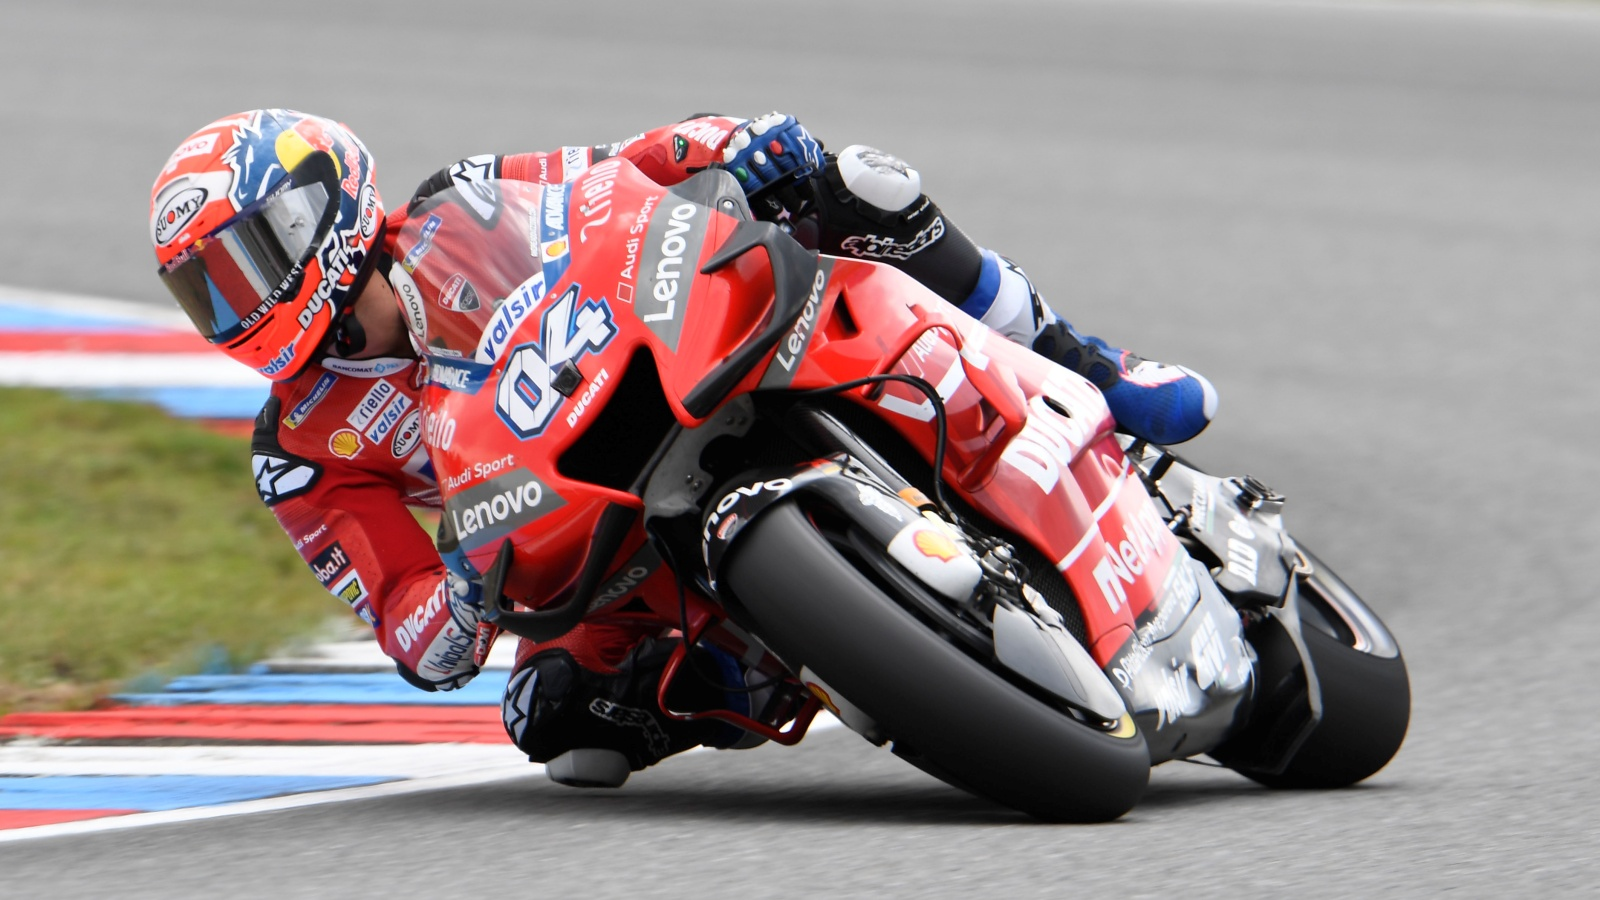 Marc 'The Bike' Márquez seca a Andrea Dovizioso en Brno e iguala a Mike Hailwood